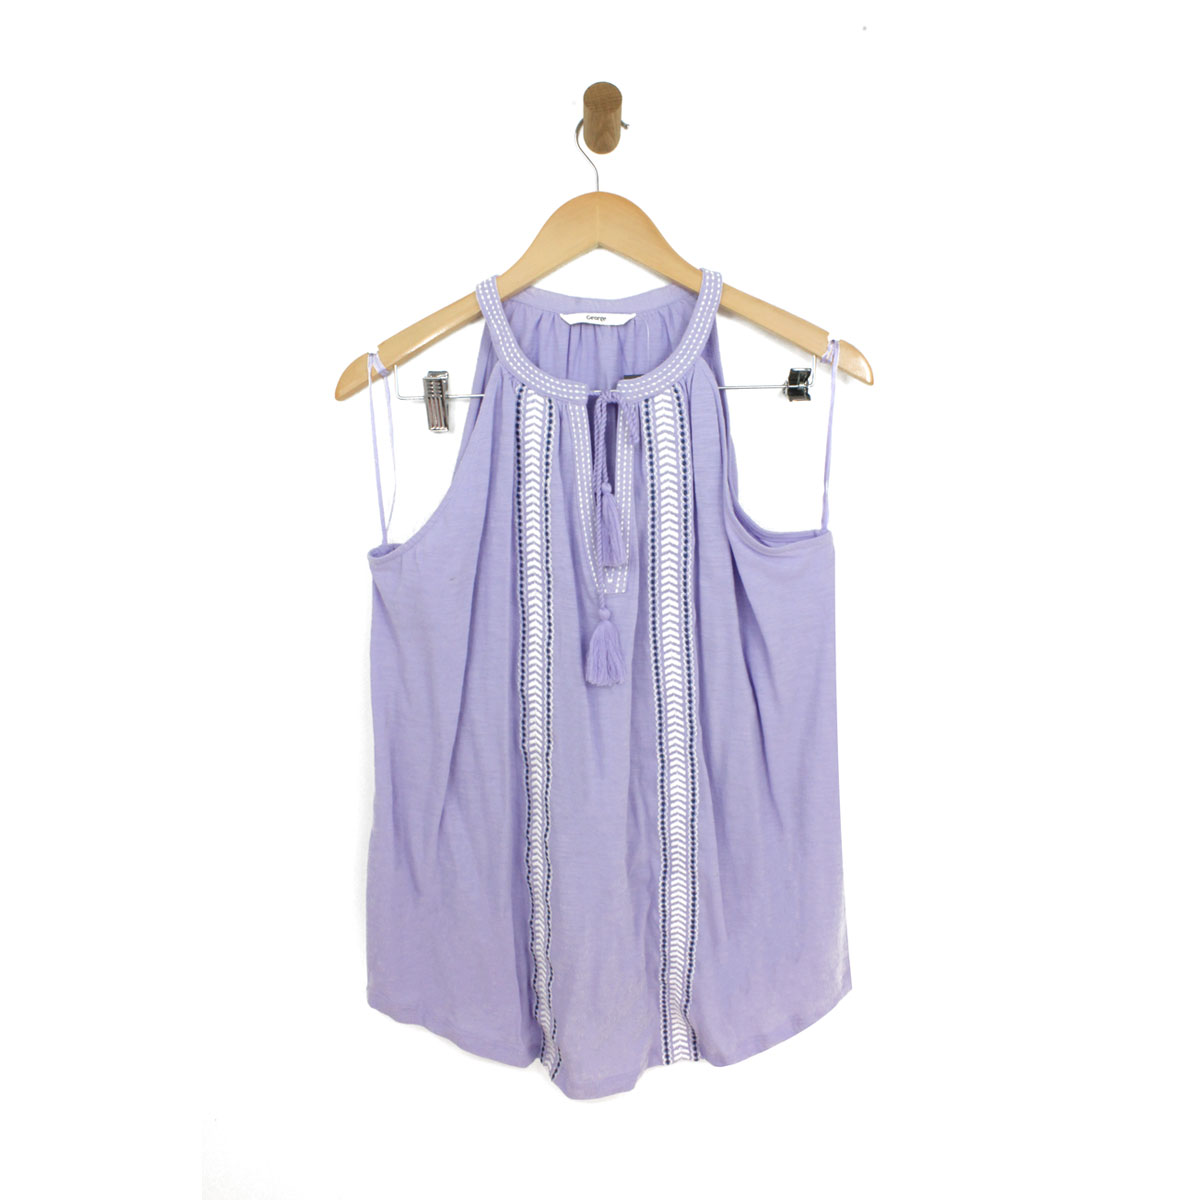 Womens-Casual-Tassel-Sleeveless-Loose-Cami-Vest-Tops-T-Shirt-Blouse-Size-14-22 thumbnail 7